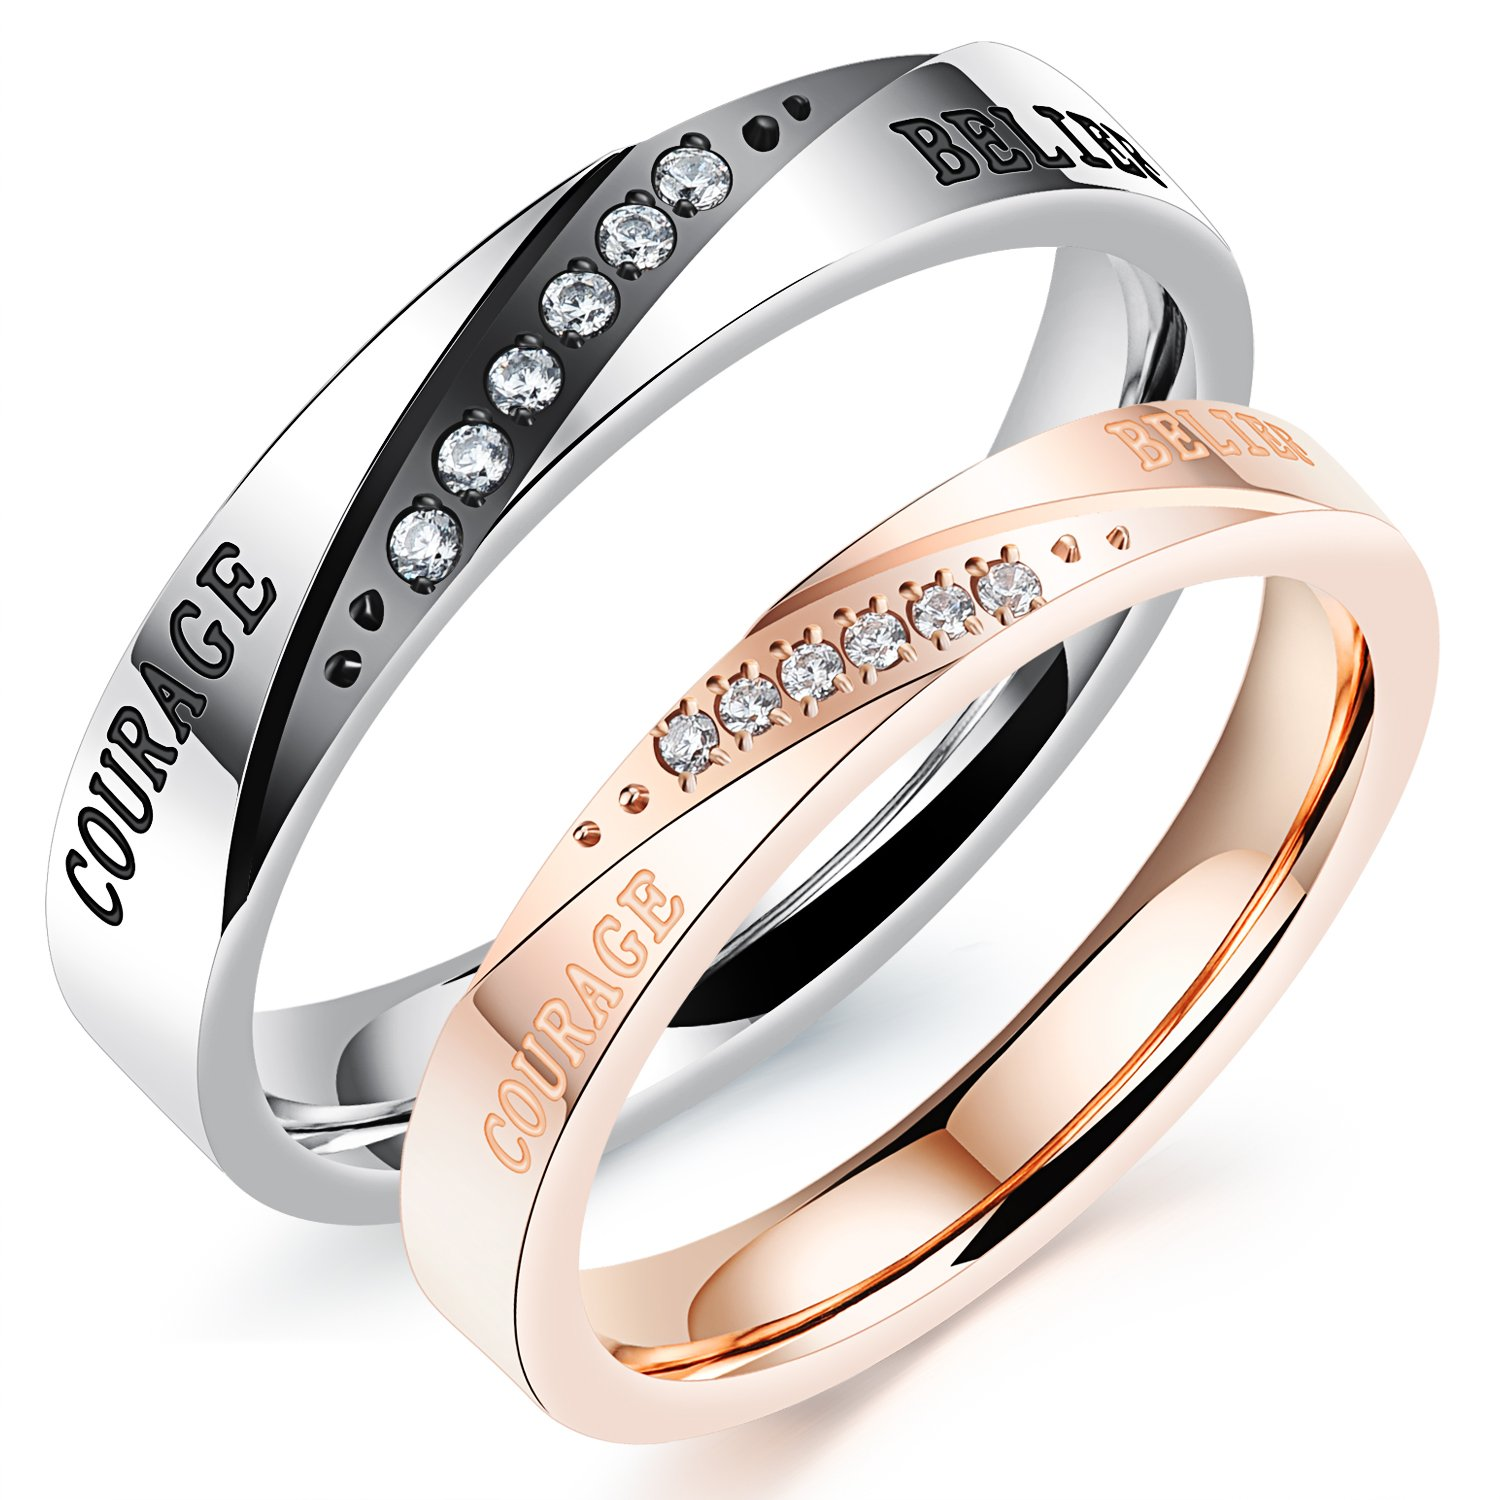 His or Hers Matching Set Belief and Courage Couple Ring Simple Korean Style SunnyHouse Jewelry